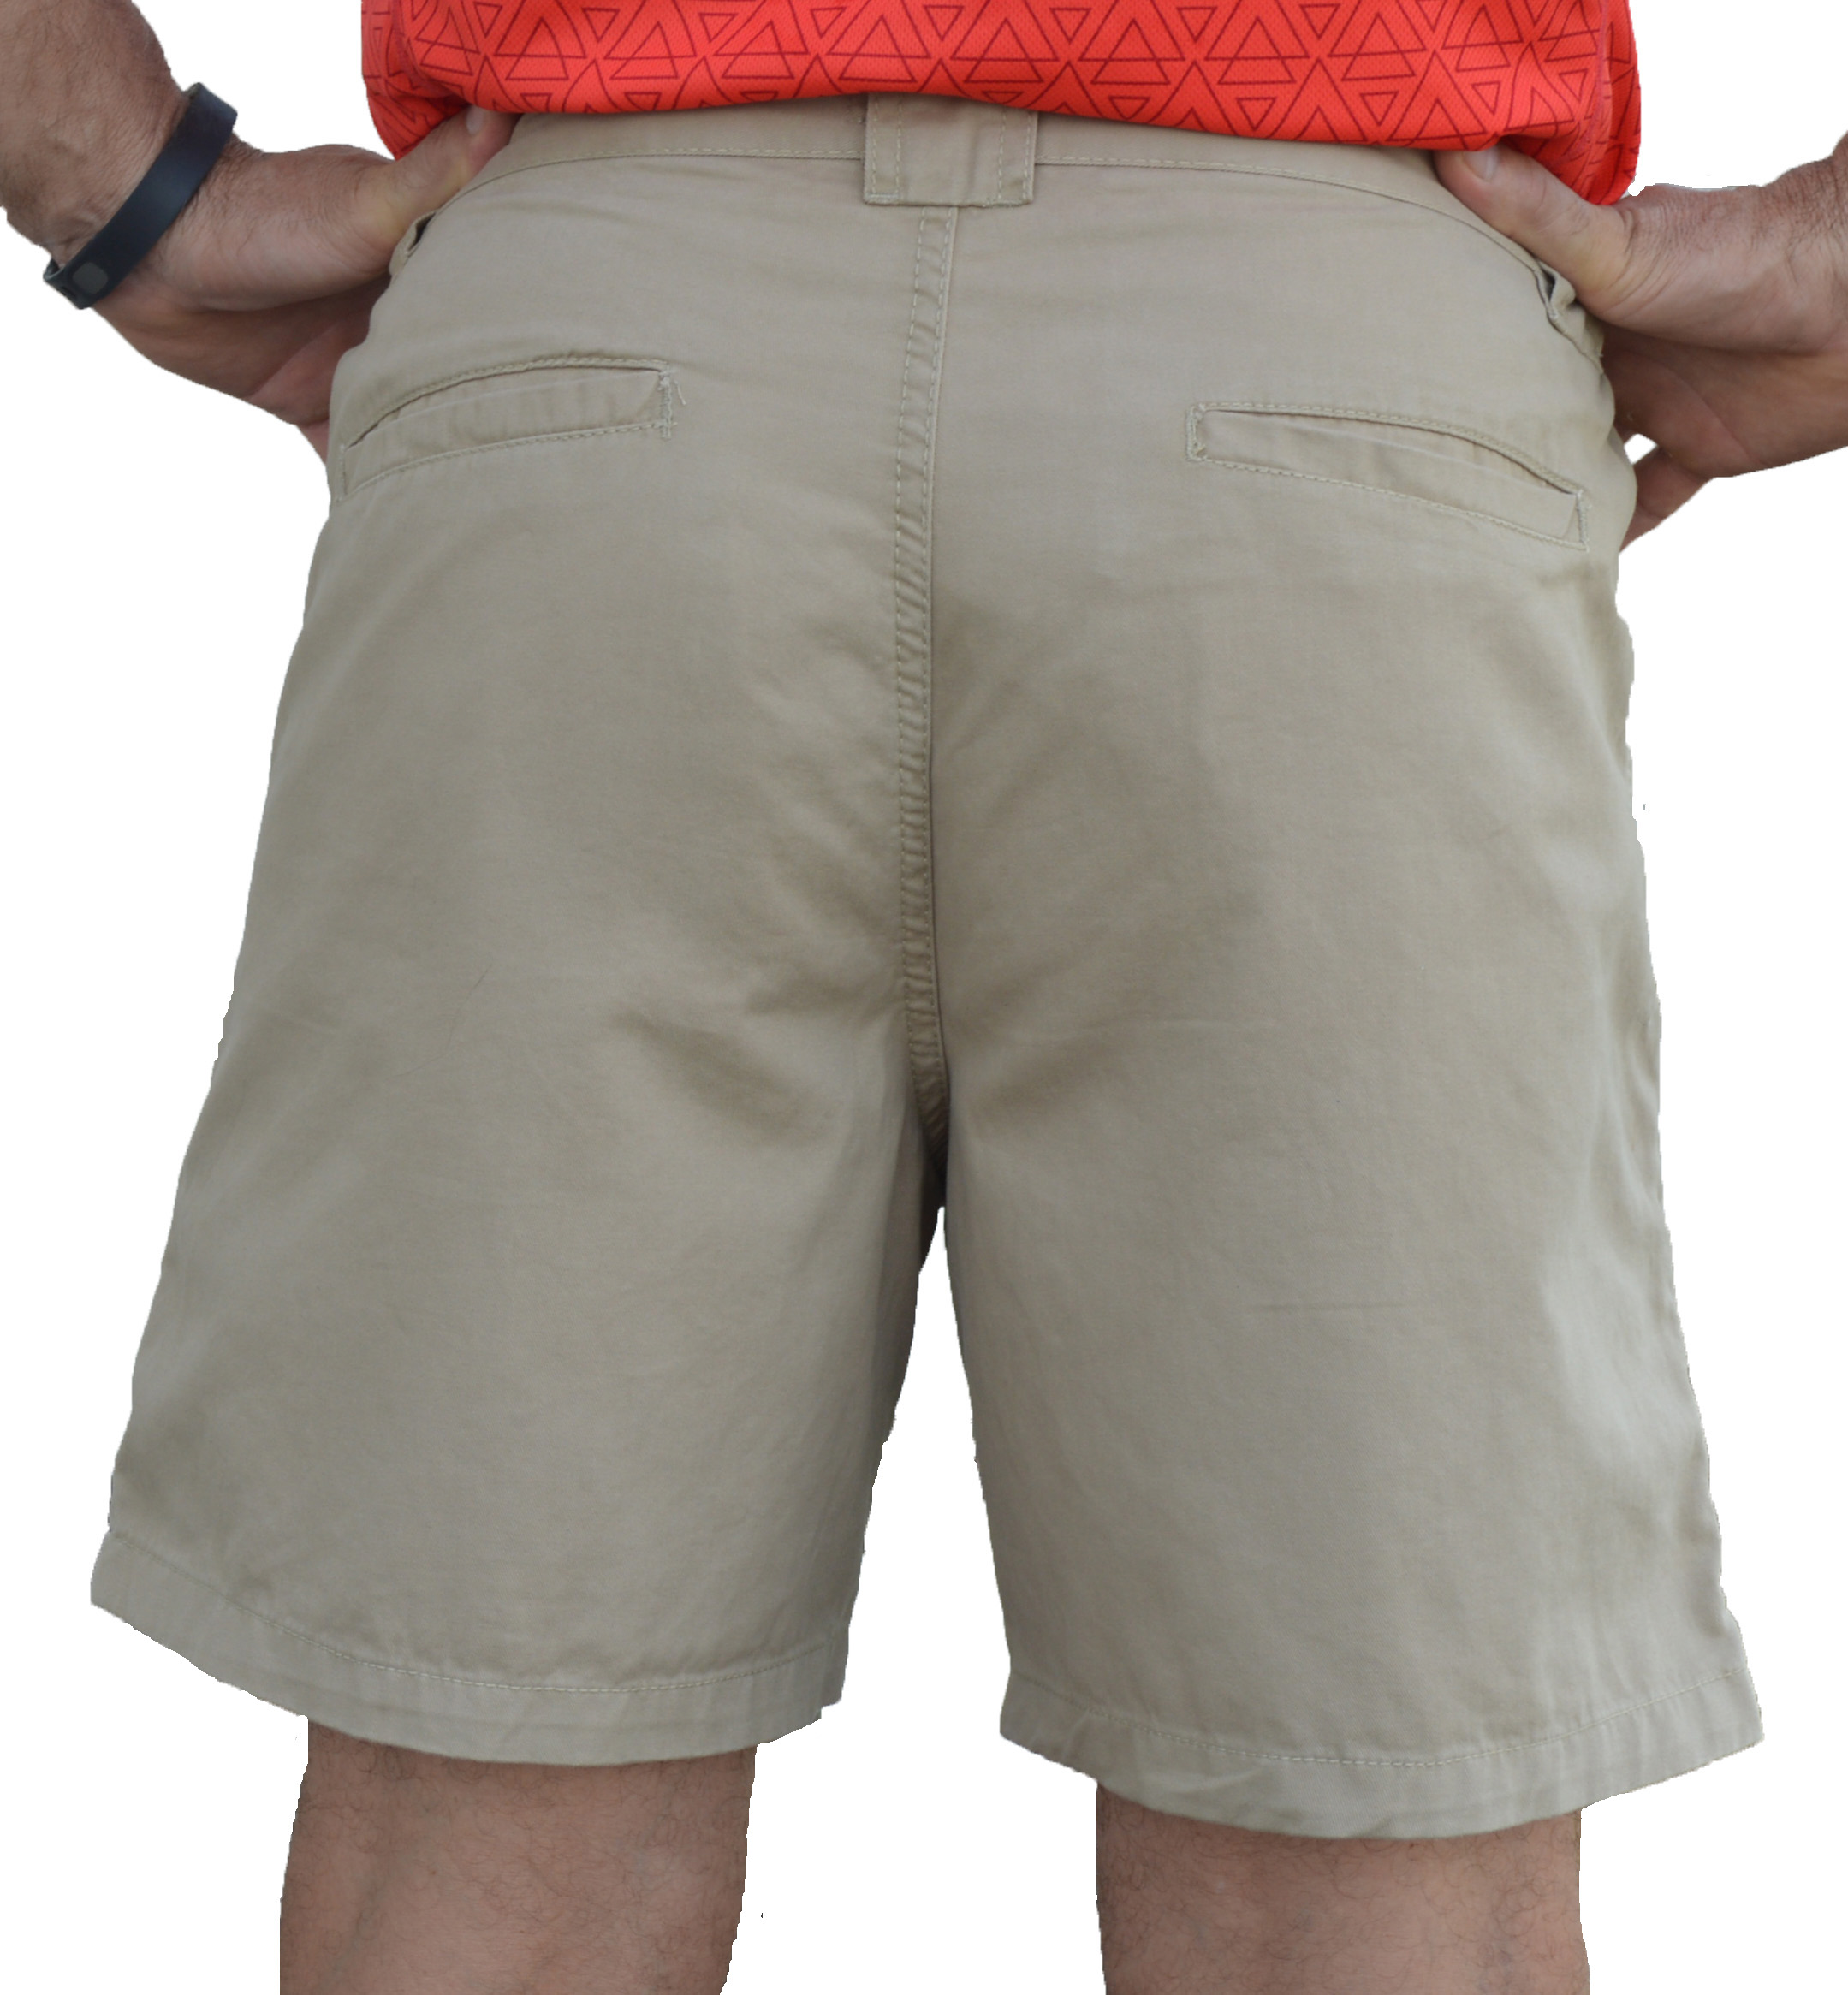 TROD Men's Deep Pocket Short with 6 inch Inseam - Private Line ...